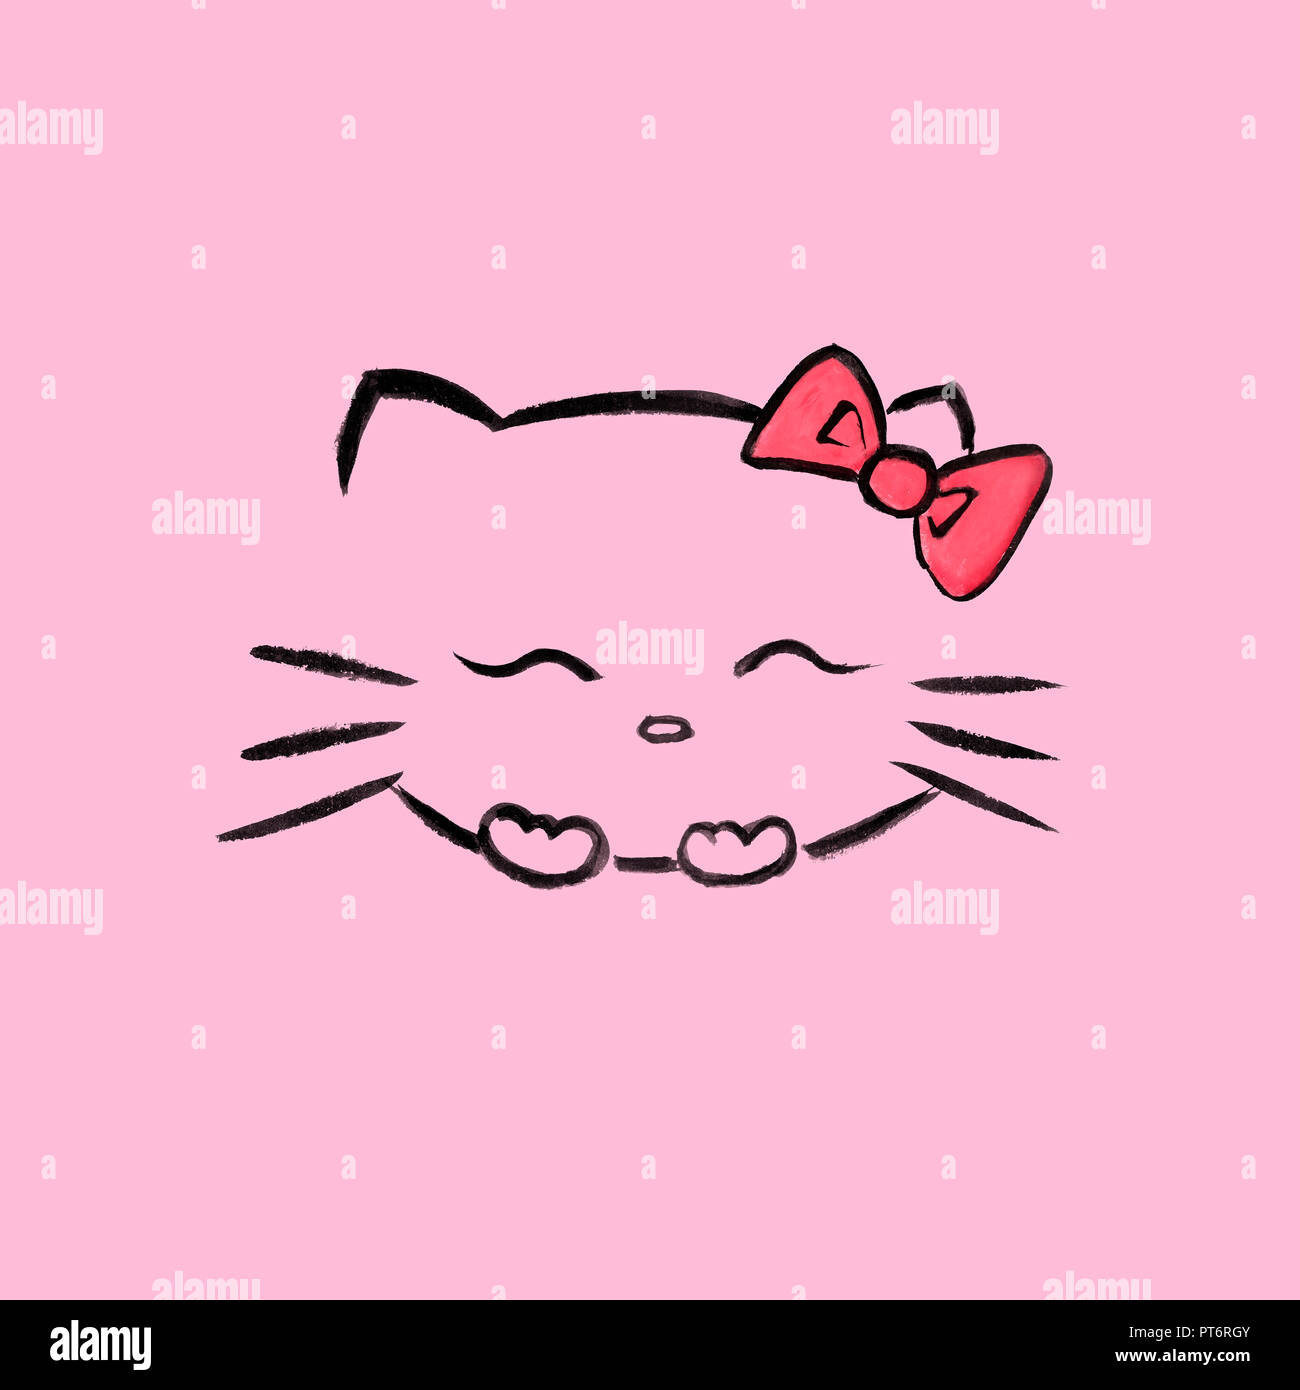 Cute, smiling Hello kitty with a red bow, Japanese kawaii cartoon character inspired sumi-e illustration. Isolated on pink background. - Stock Image